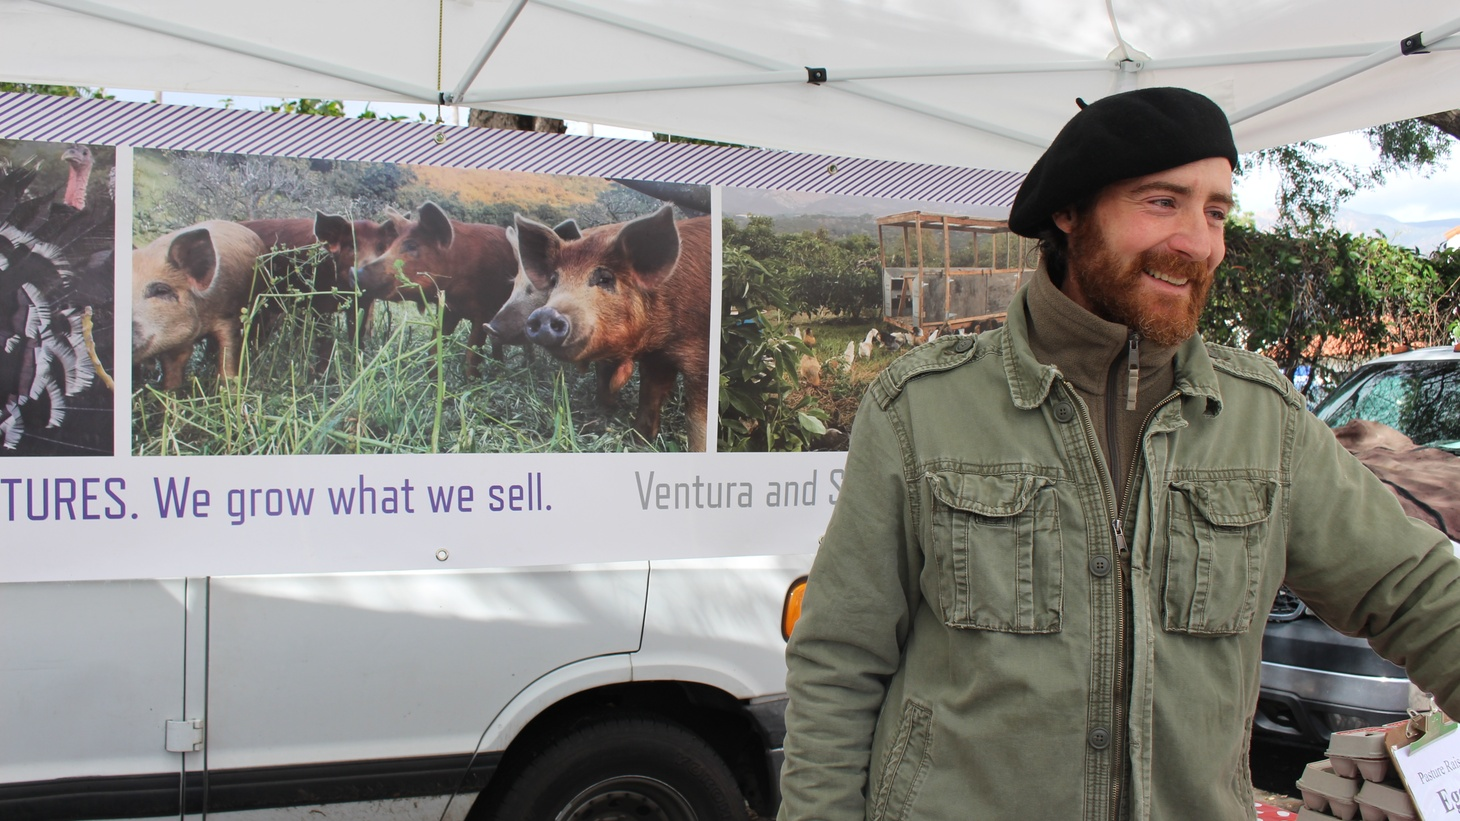 You can typically find Jeronimo Alonzo Brown on Saturday at the Santa Barbara Farmers Market